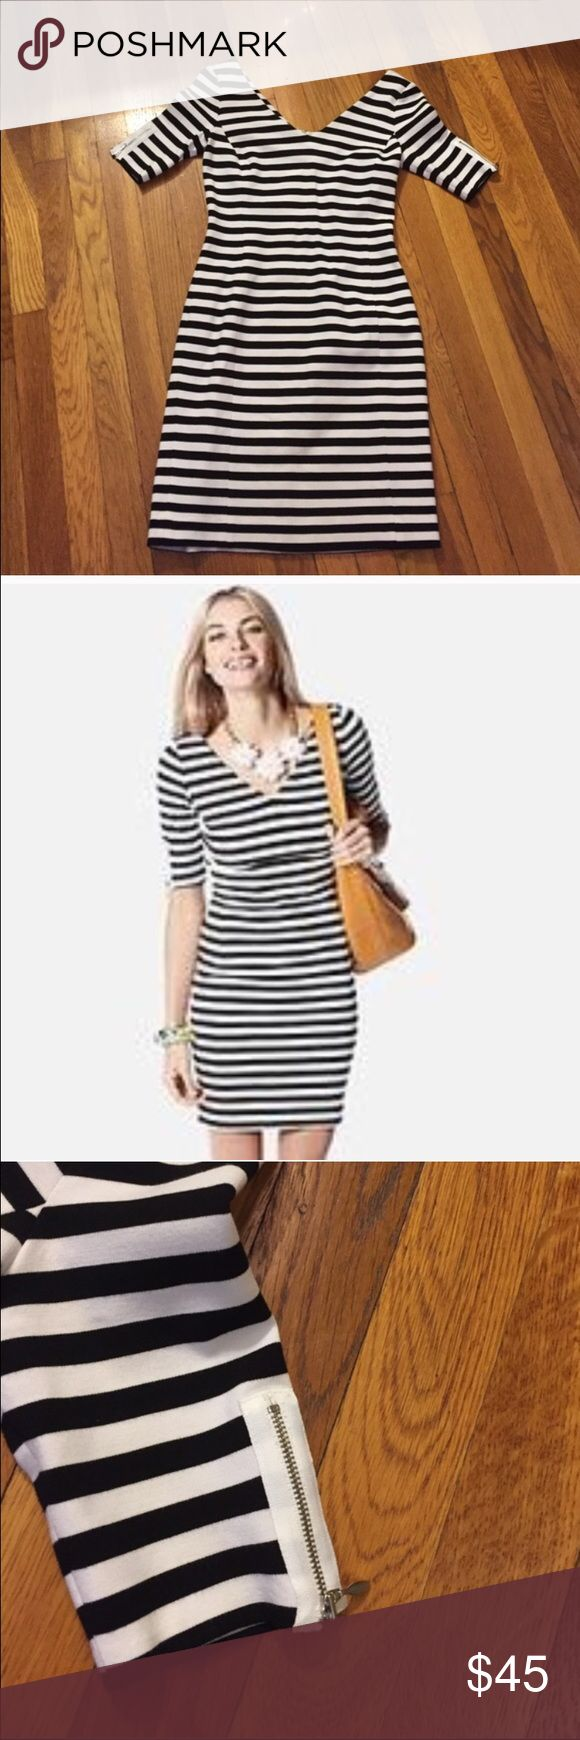 Striped BodyCon Dress Adorable black and white dress with zippers on the sleeve. Vneck in front and back. Such a classic lovely look! Banana Republic Dresses Mini